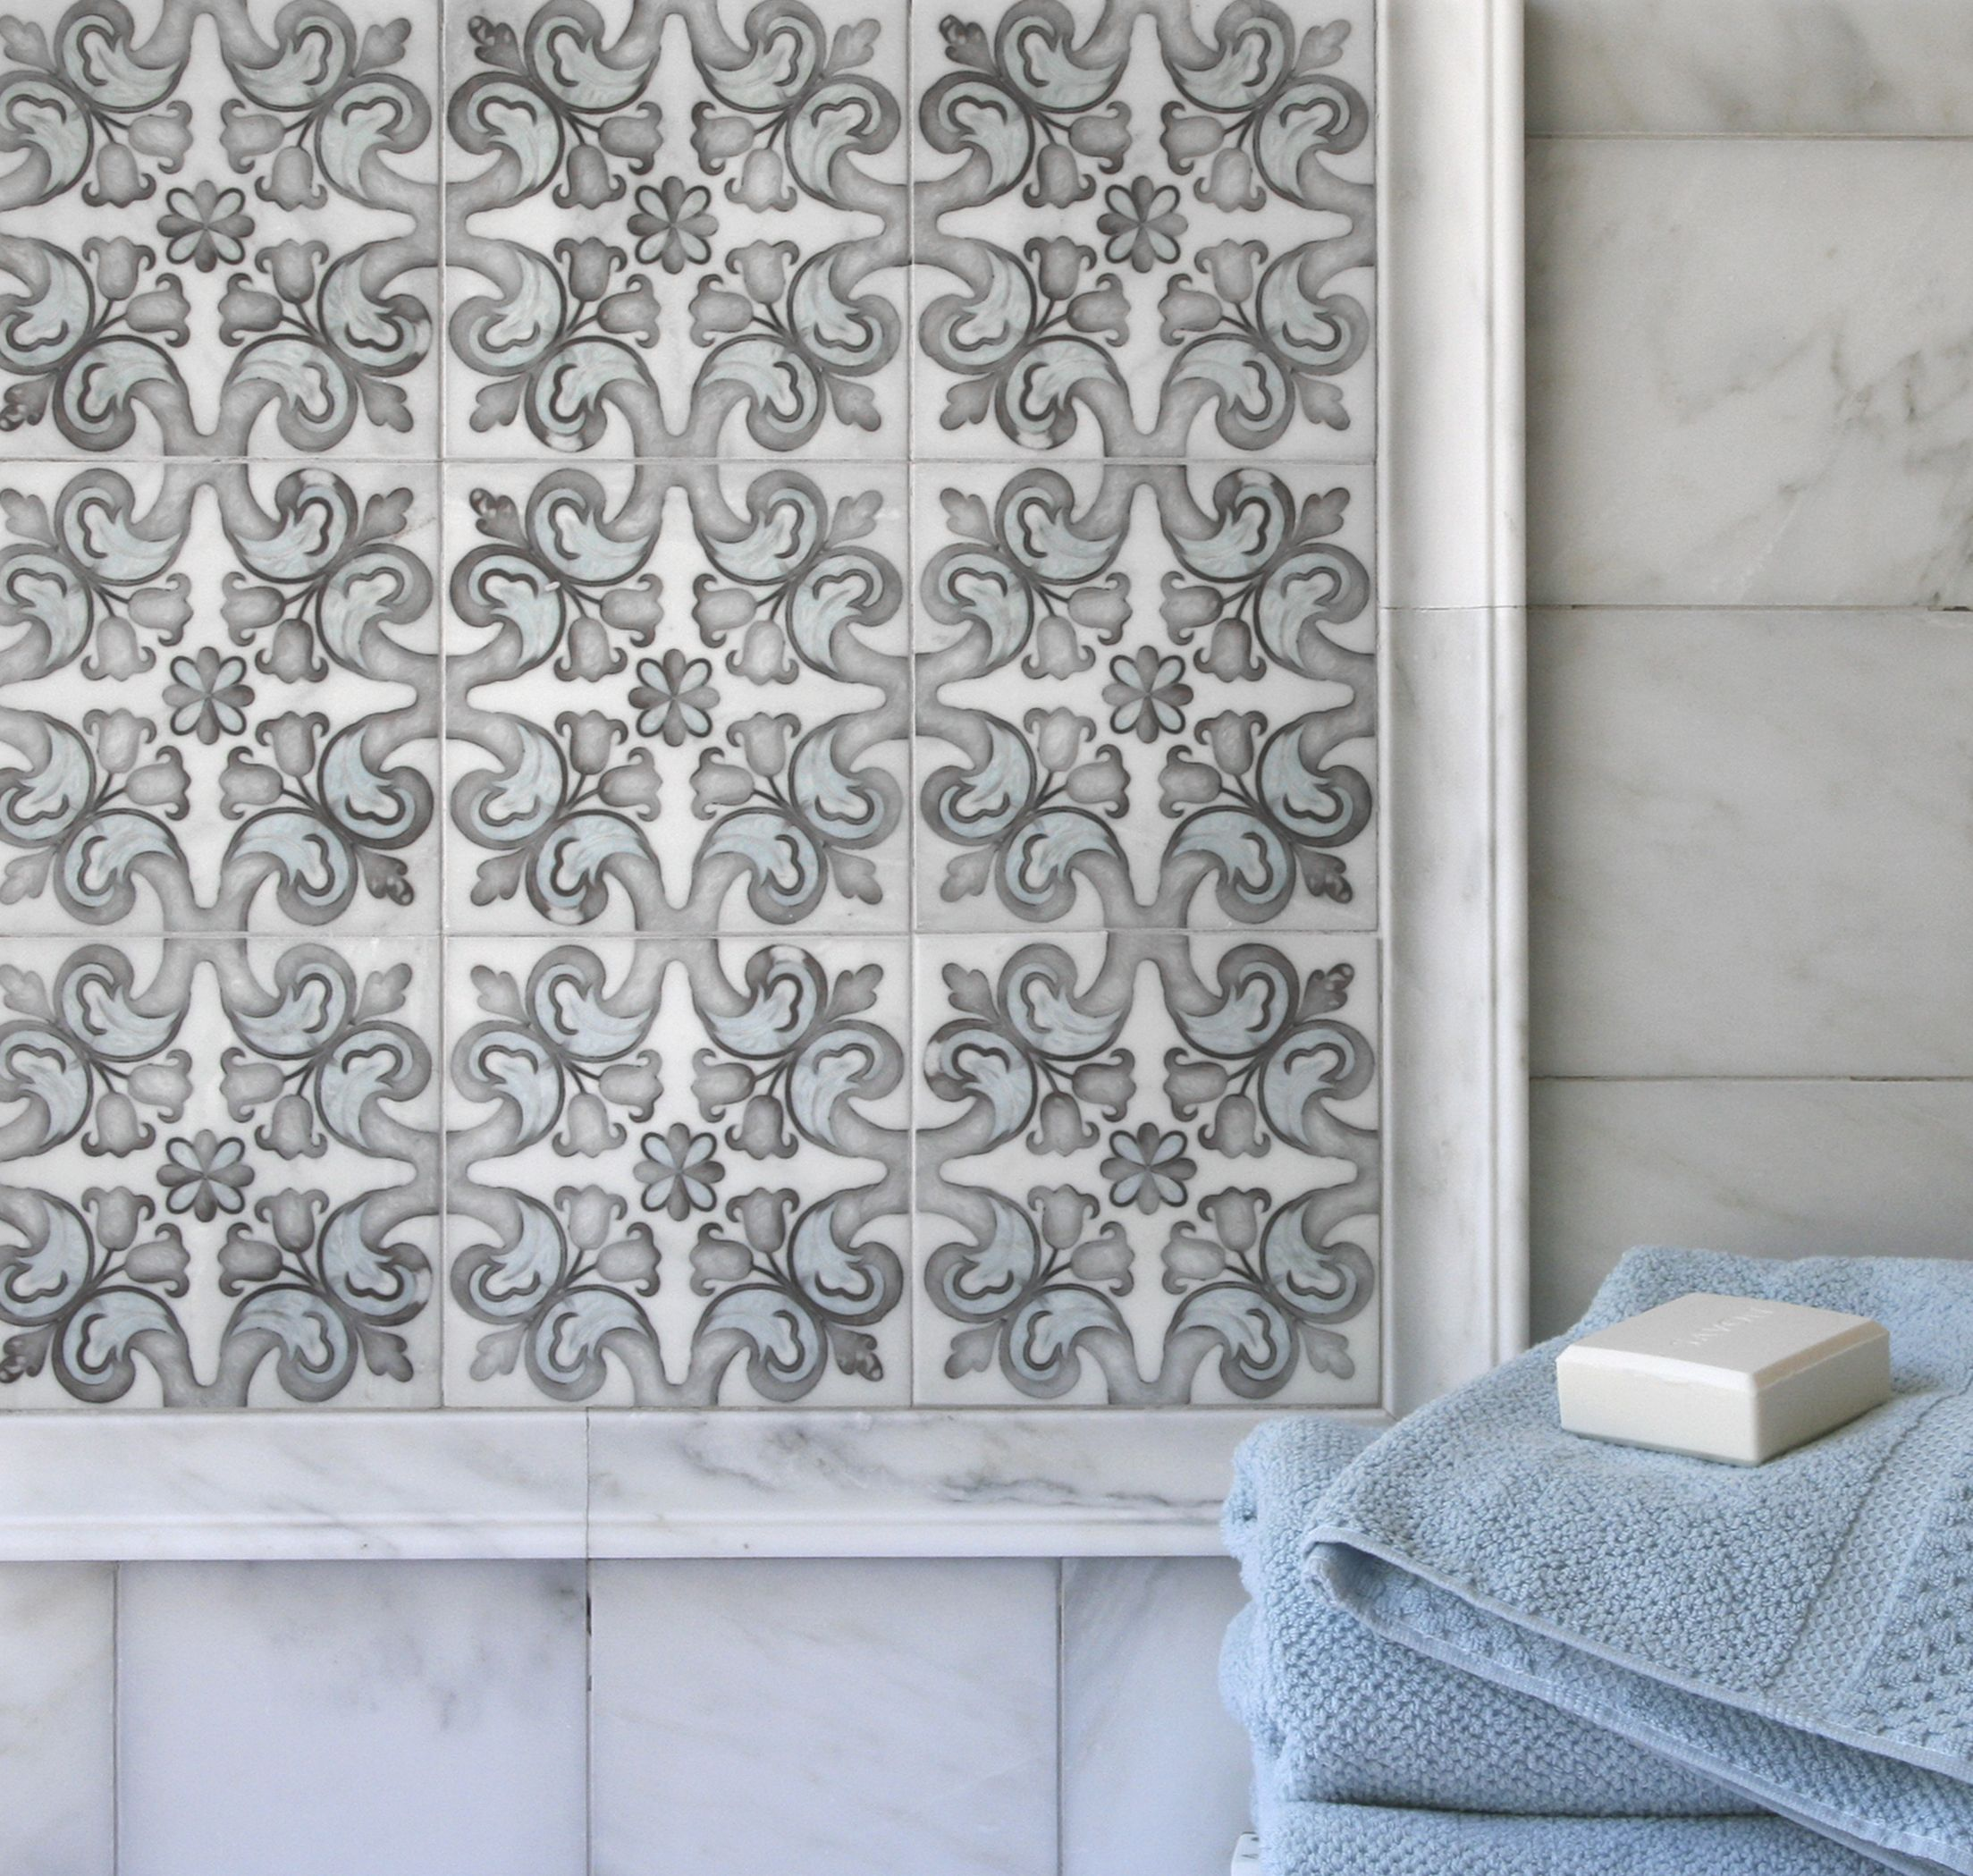 Natural stone bathroom tiles 25 off marshalls natural stone tiles - Marbella Pattern Part Of The Artisan Stone Tile Collection Available On Carrara And Ready